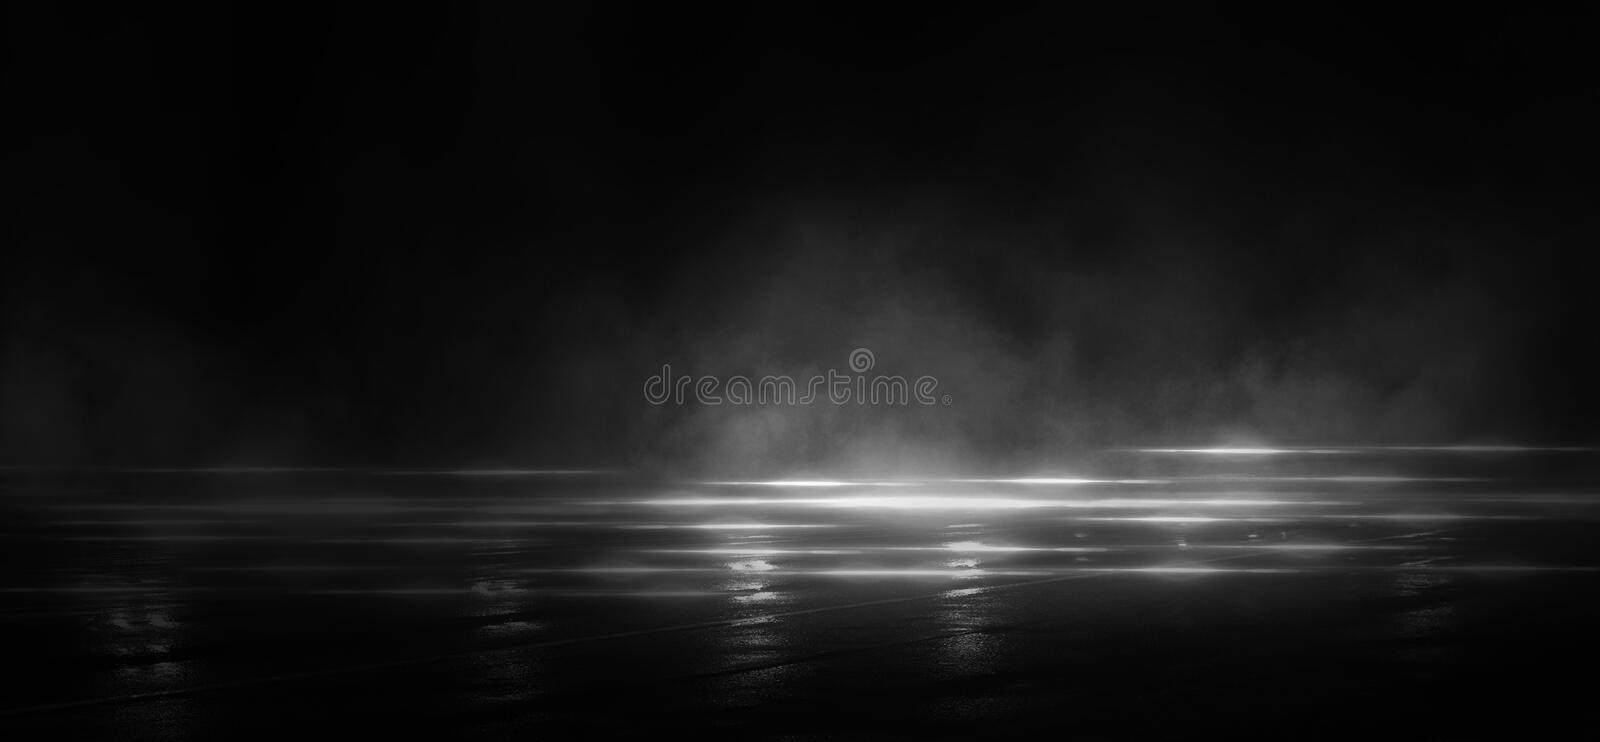 Wet asphalt, reflection of neon lights, a searchlight, smoke. Abstract light in a dark empty street with smoke, smog. Dark background scene of empty street royalty free illustration